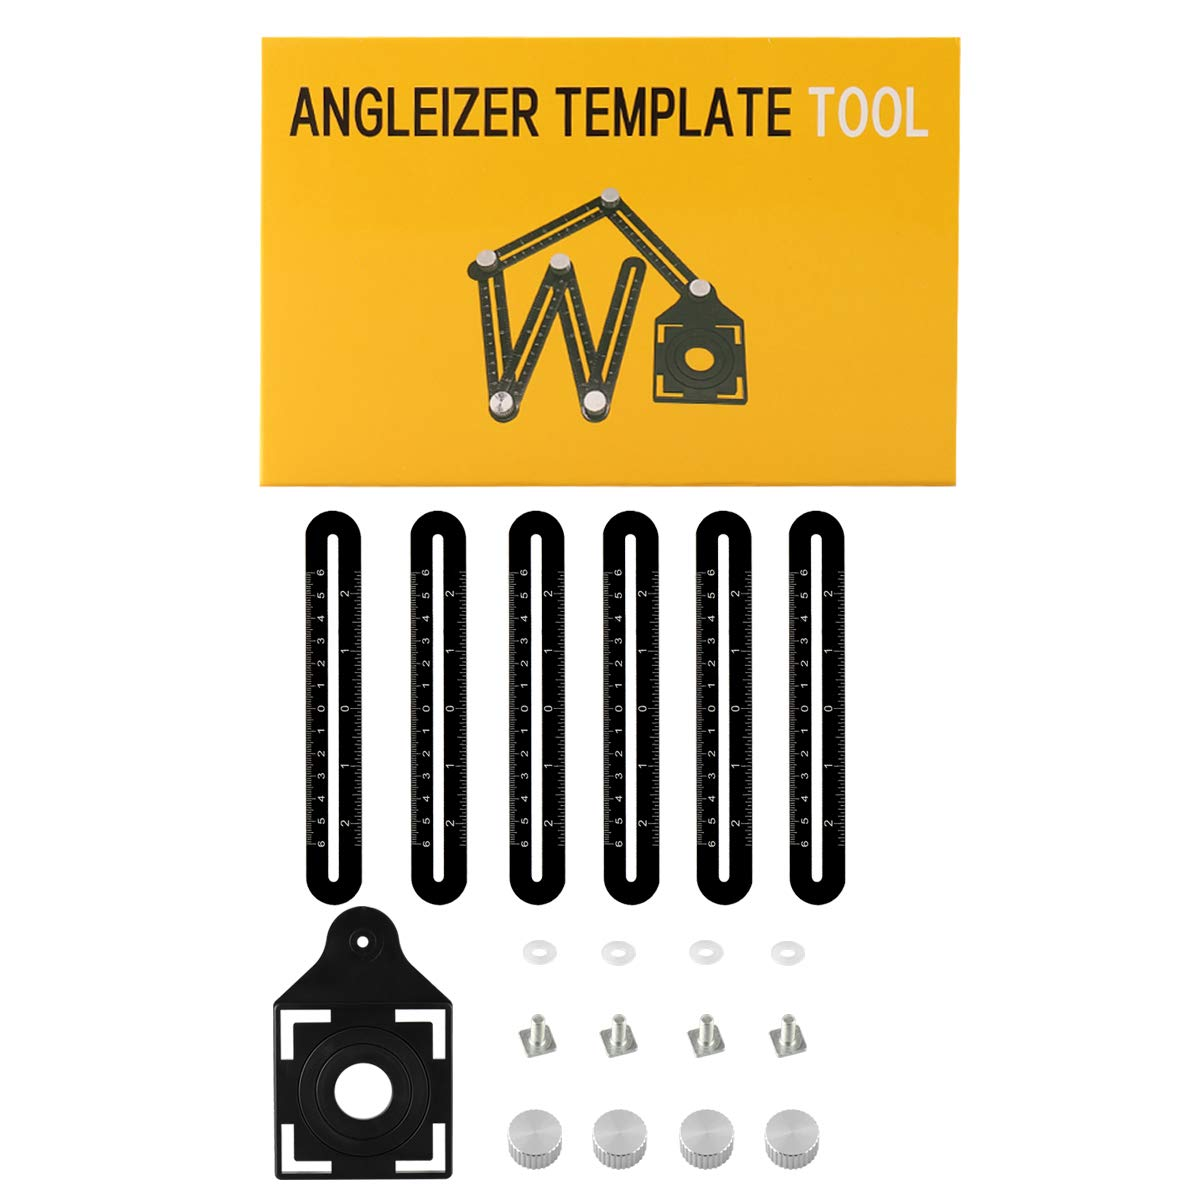 Six Sides JIAN YA NA Angle Template Tool Full Metal Scratch-Proof Multi Functional Ruler Aluminum Alloy Easy Angle Measuring Tool for Builders Roofers Tilers Handymen Craftsmen